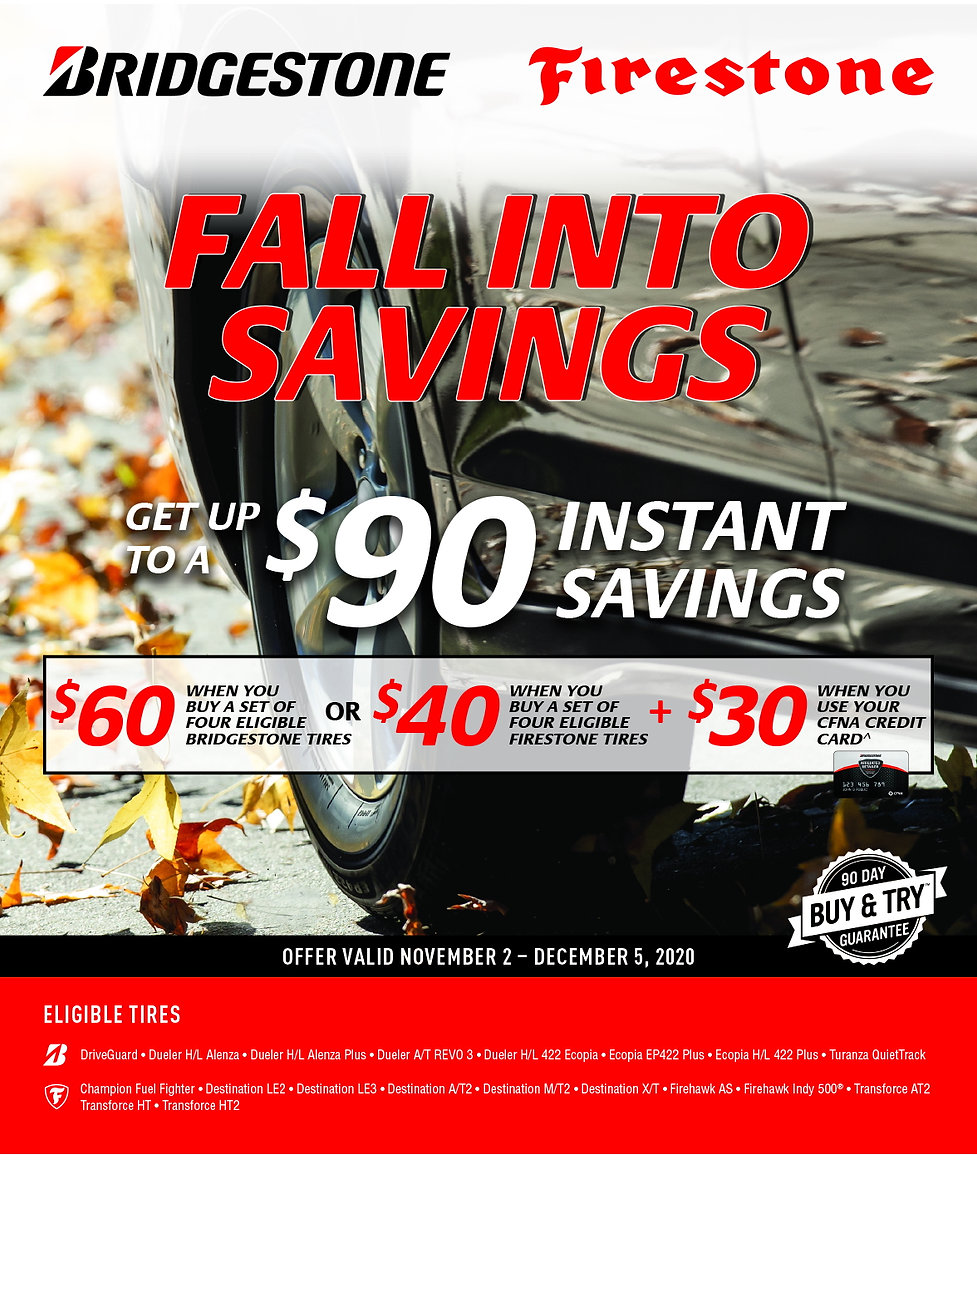 Bridgestone and Firestone rebate. Offer Valid Nov 2 to Dec 5, 2020.  Offer Valid November 2 – December 5, 2020  Conditions apply. See FirestoneTire.com/warranty for details. Eligible products: DriveGuard, Dueler, Ecopia, Turanza, Champion, Destination, Firehawk, Transforce. Receive $60 off 4 eligible Bridgestone tires or $40 off 4 eligible Firestone tires purchased between November 2 and December 5, 2020. Limit 2 per household. Participating retailers only. Not combinable with other offers. Void where prohibited. Other restrictions, fees, and taxes may apply. Discount given at time of purchase and is on pretax amount. See store associate for details.  ^Receive the $90 or $70 savings when you make a qualifying tire purchase with any eligible CFNA credit card account. CFNA credit card subject to credit approval.